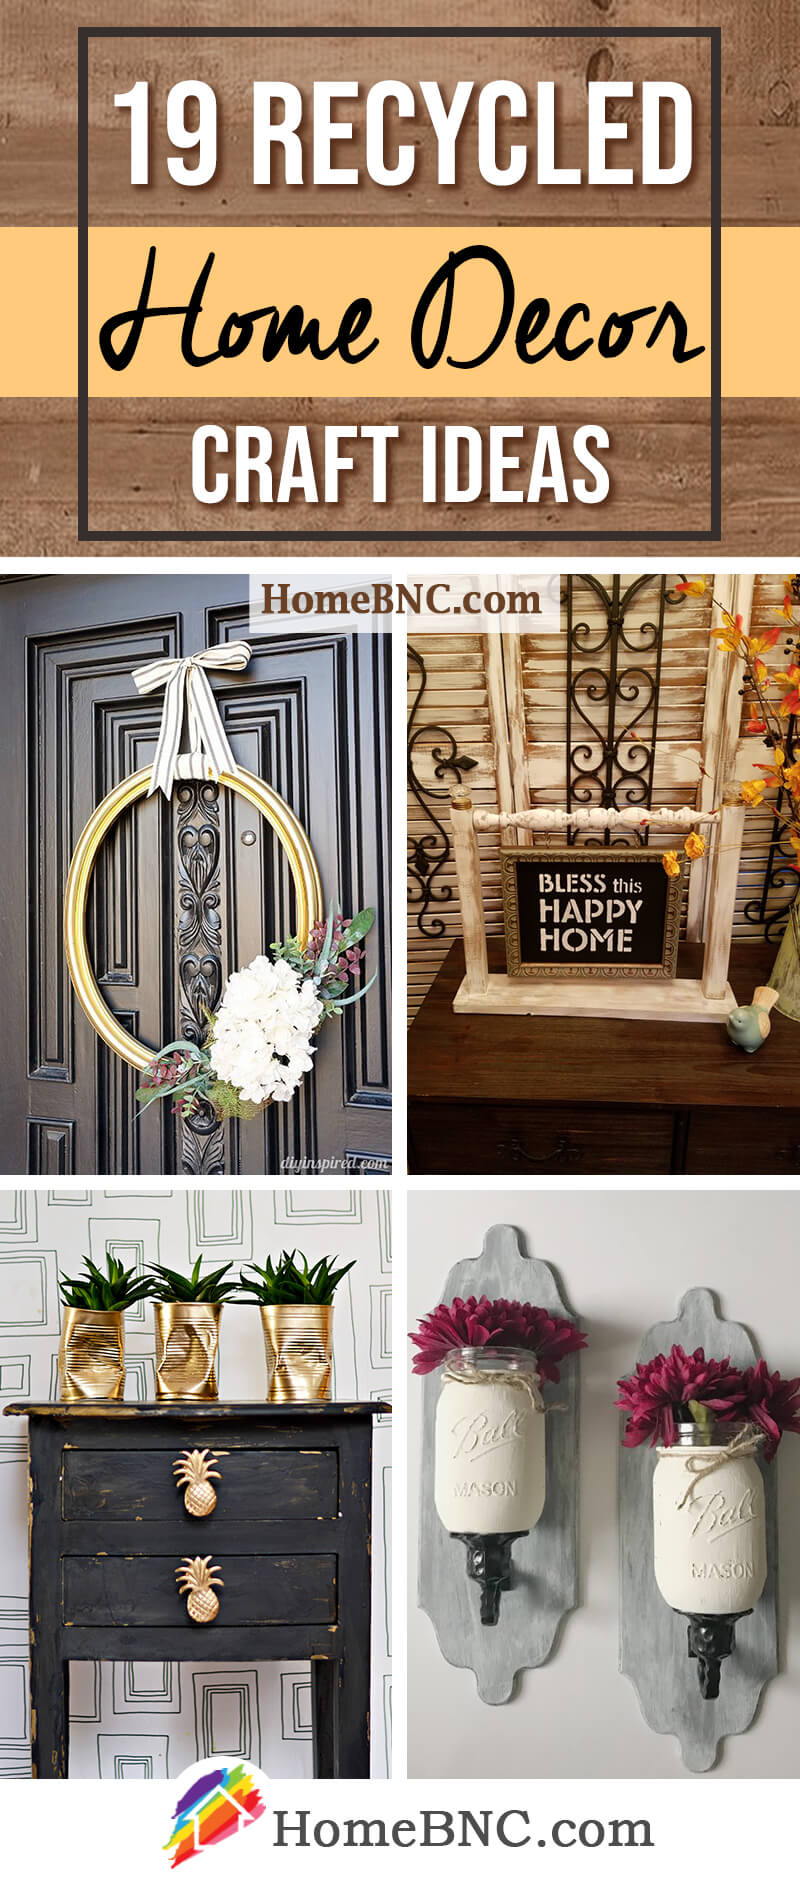 19 Recycled Home Decor Craft Ideas And Projects For 2021